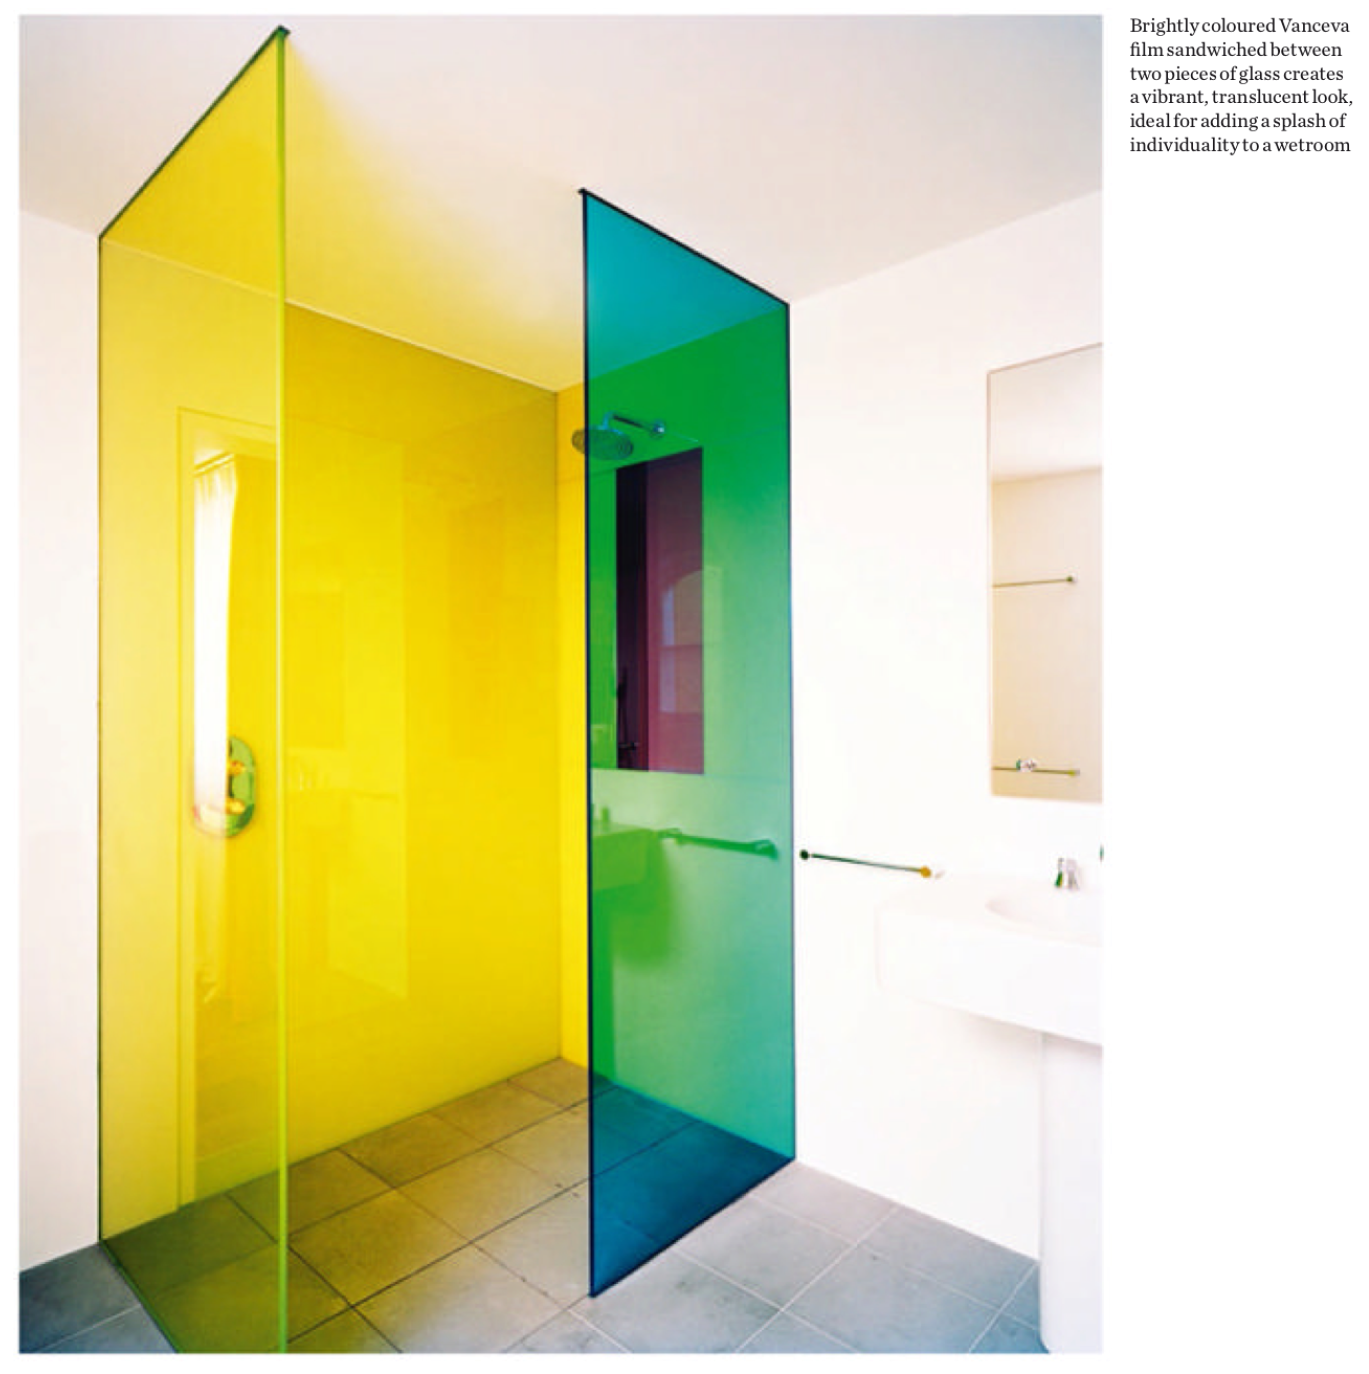 Bright Colored Glass | ホーム | Pinterest | Coloured glass